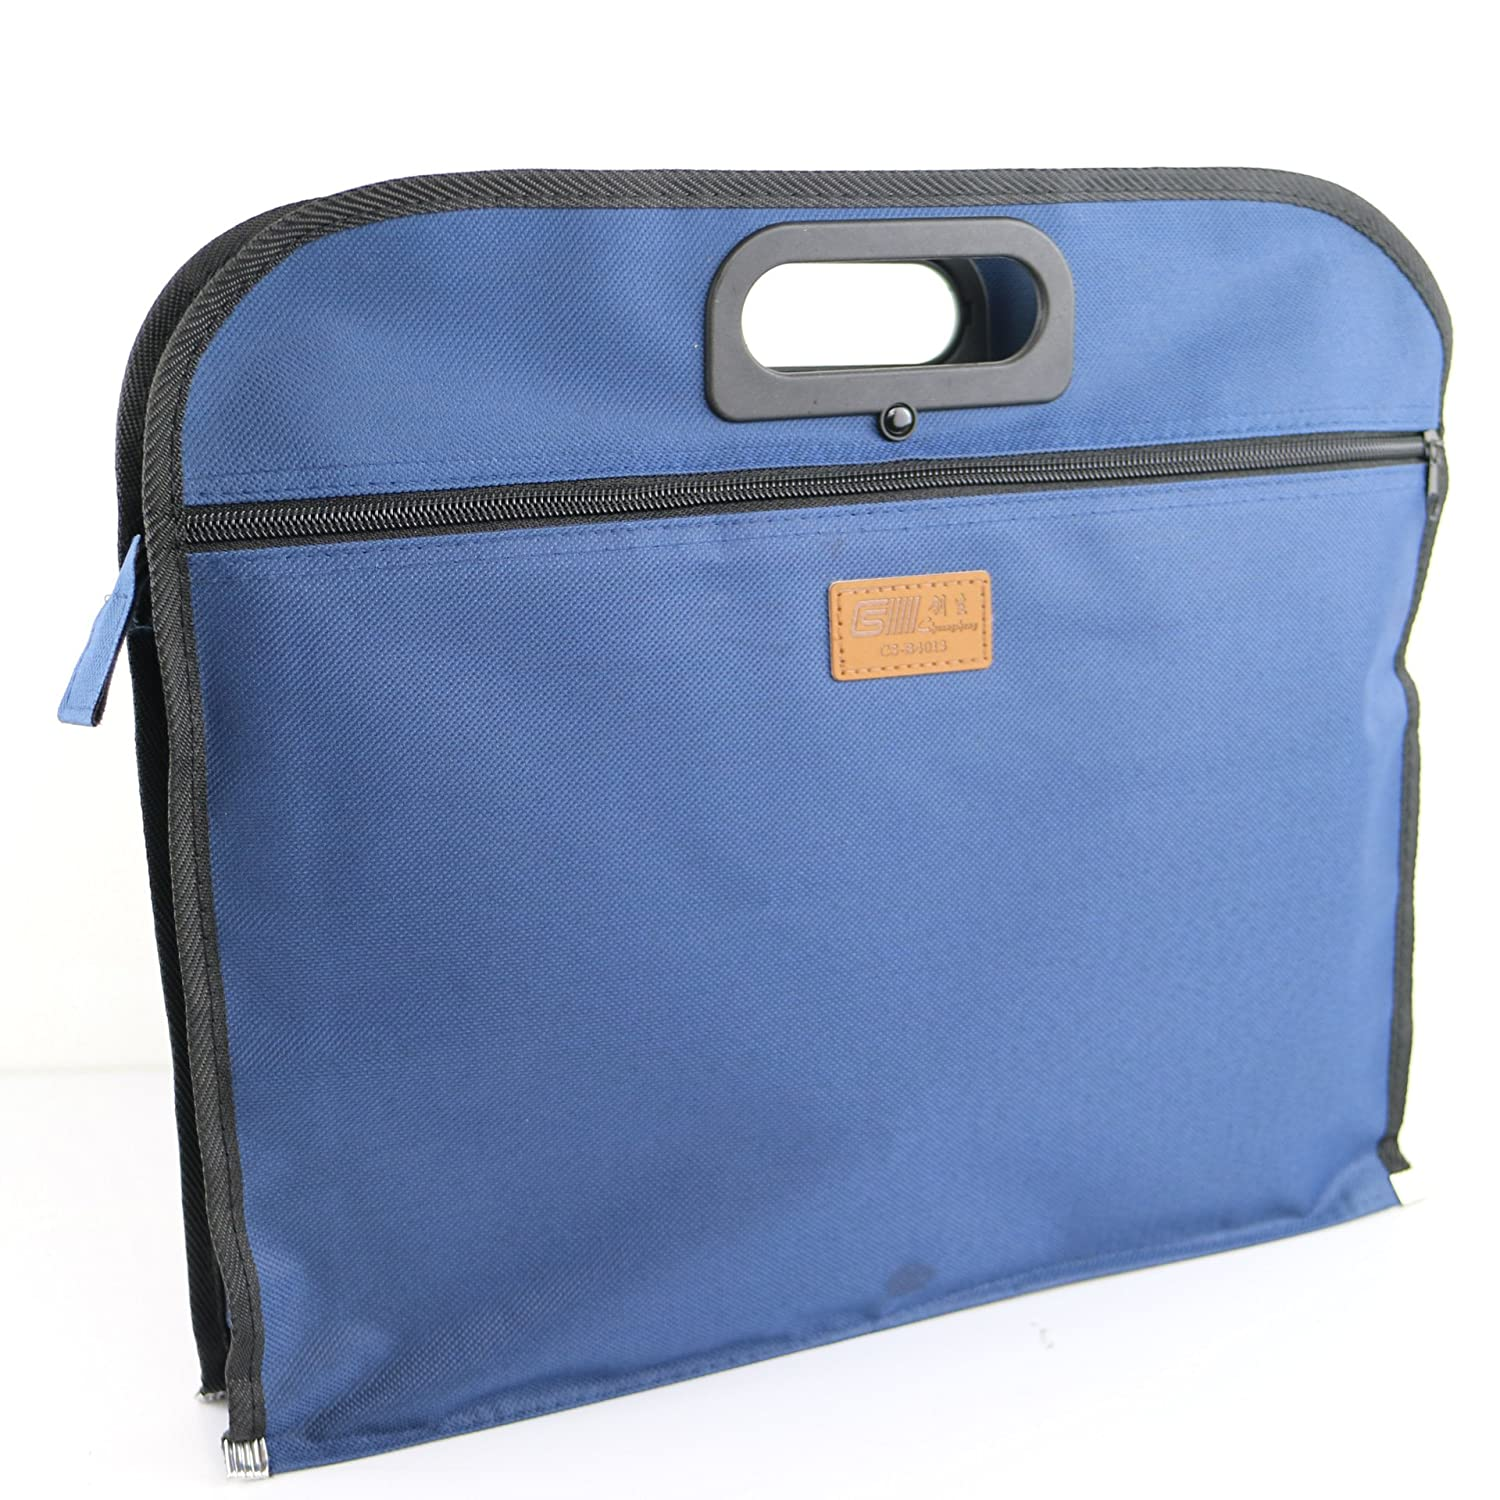 Tablets Business Documents holder Zipper Briefcase Bag for Mens Multi Purpose Usage Storing Files Folders iPad Documents